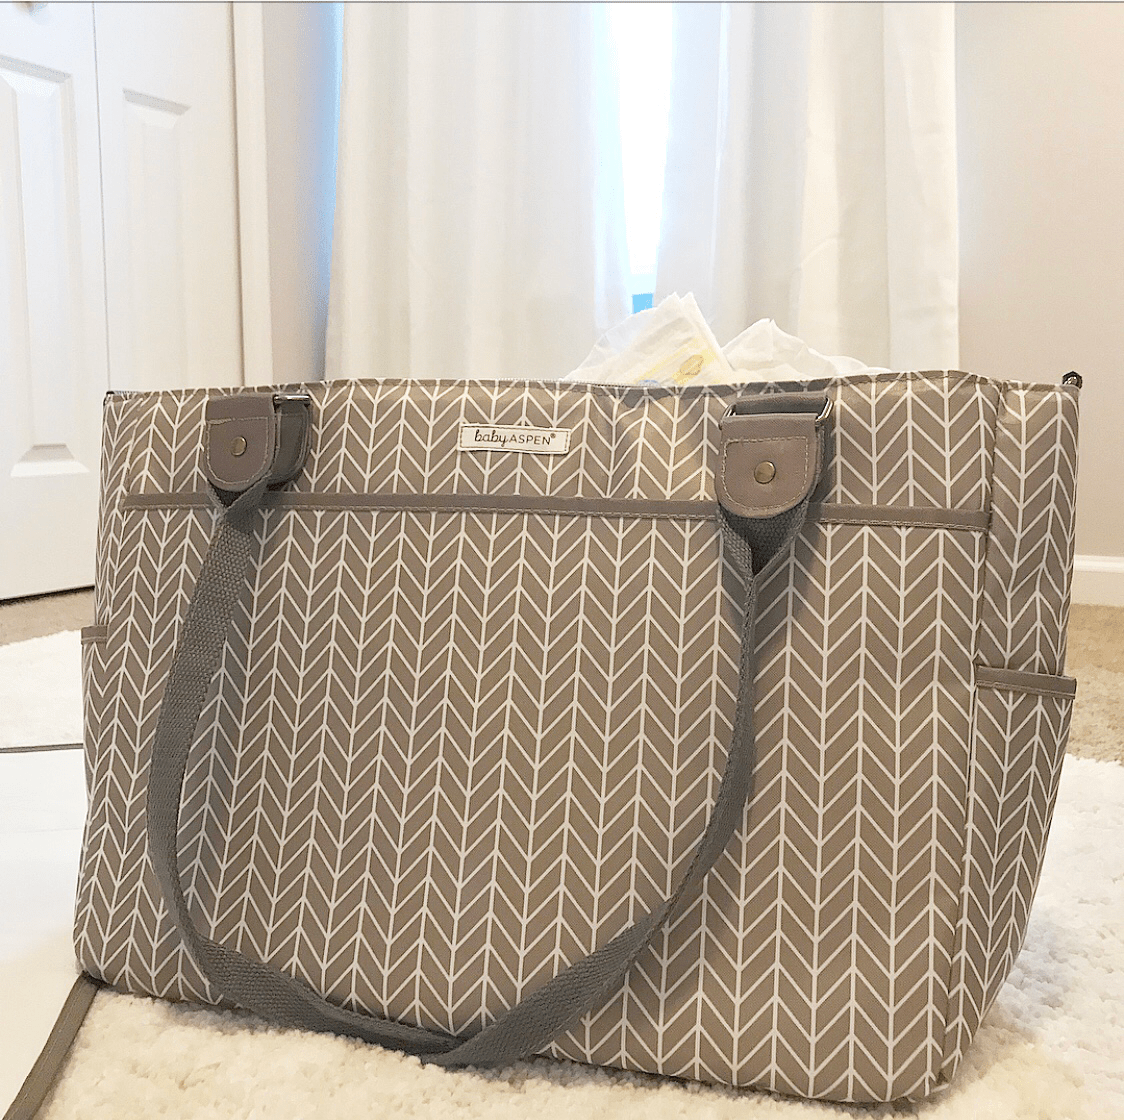 DIAPER BAG GIVEAWAY!